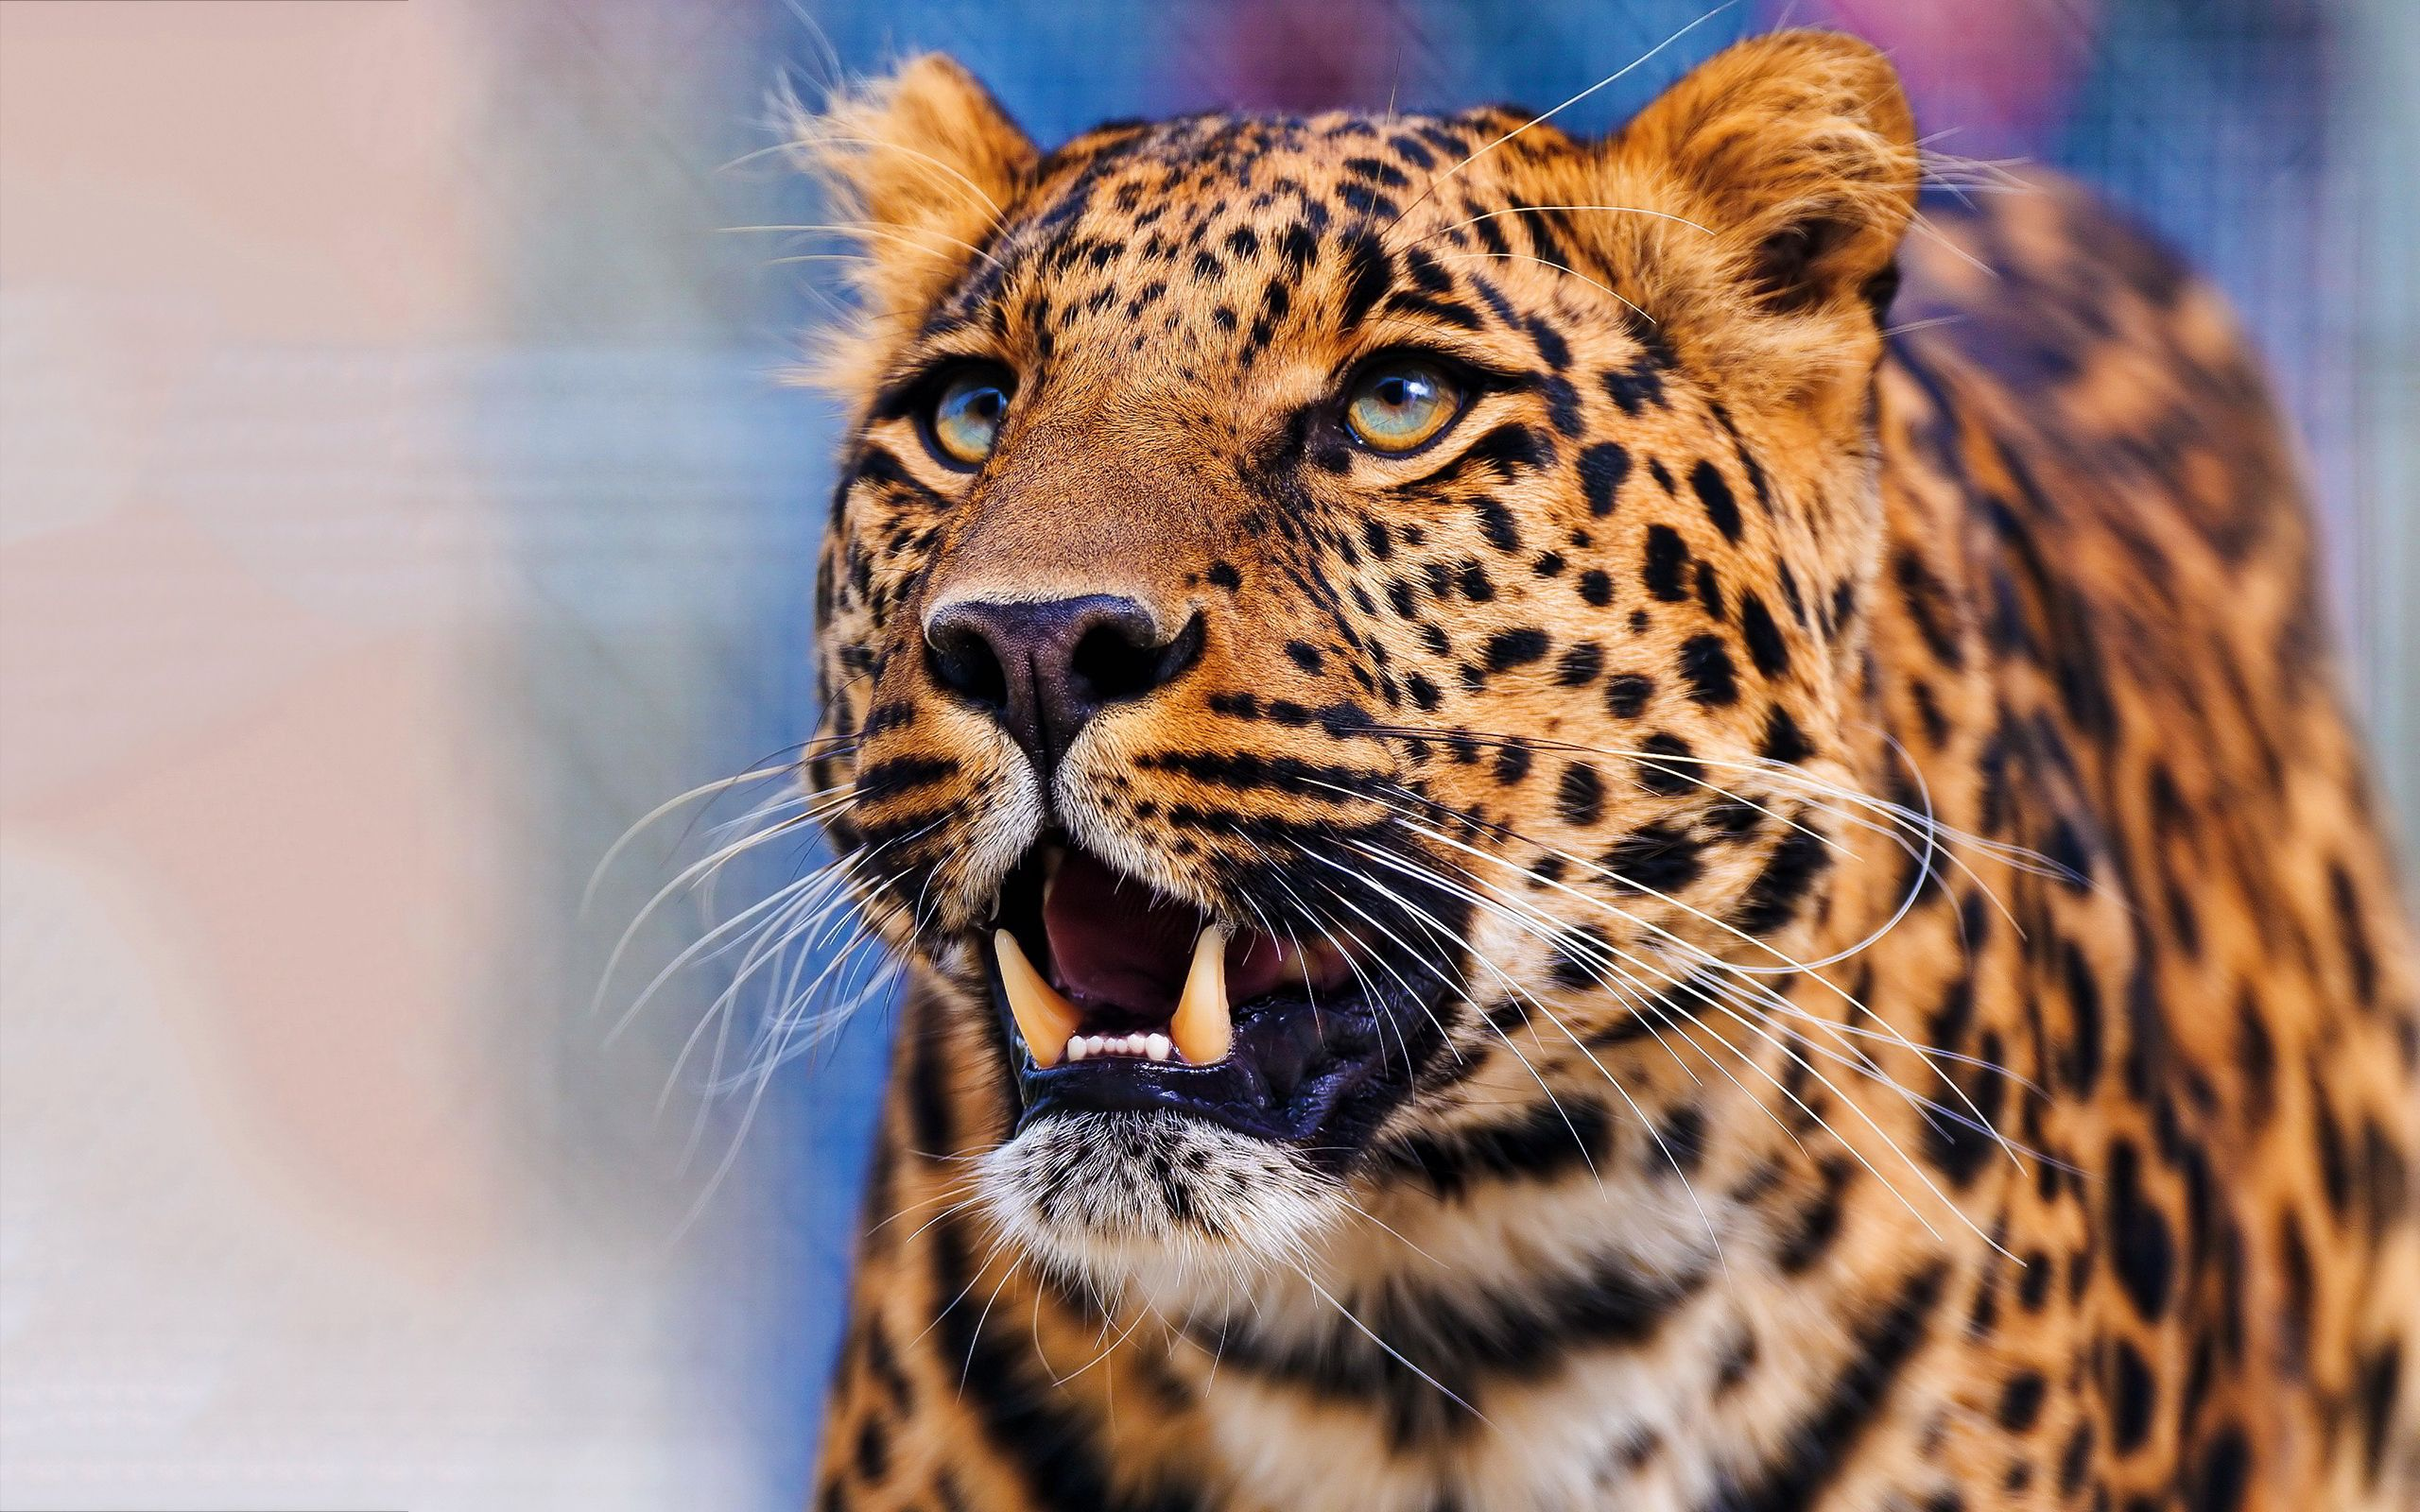 Leopard Face Hd Jpg 2560 1600 Leopard Face Cheetah Face Leopard Wallpaper